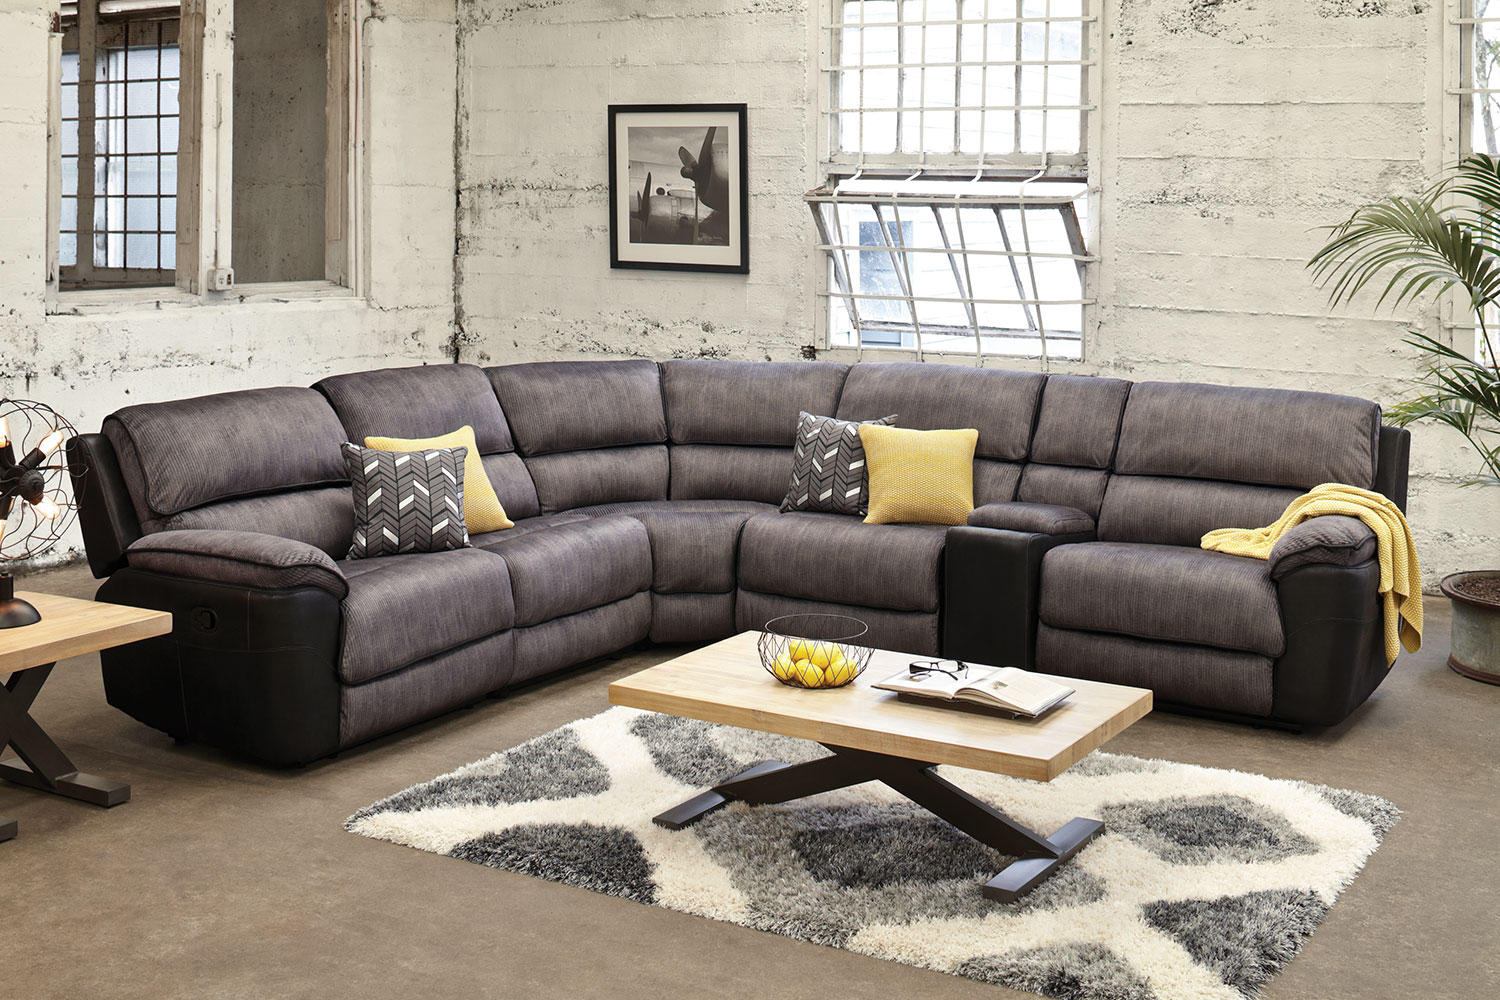 Lounge Suites Lachlan 5 Seater Fabric Corner Lounge Suite By Vivin